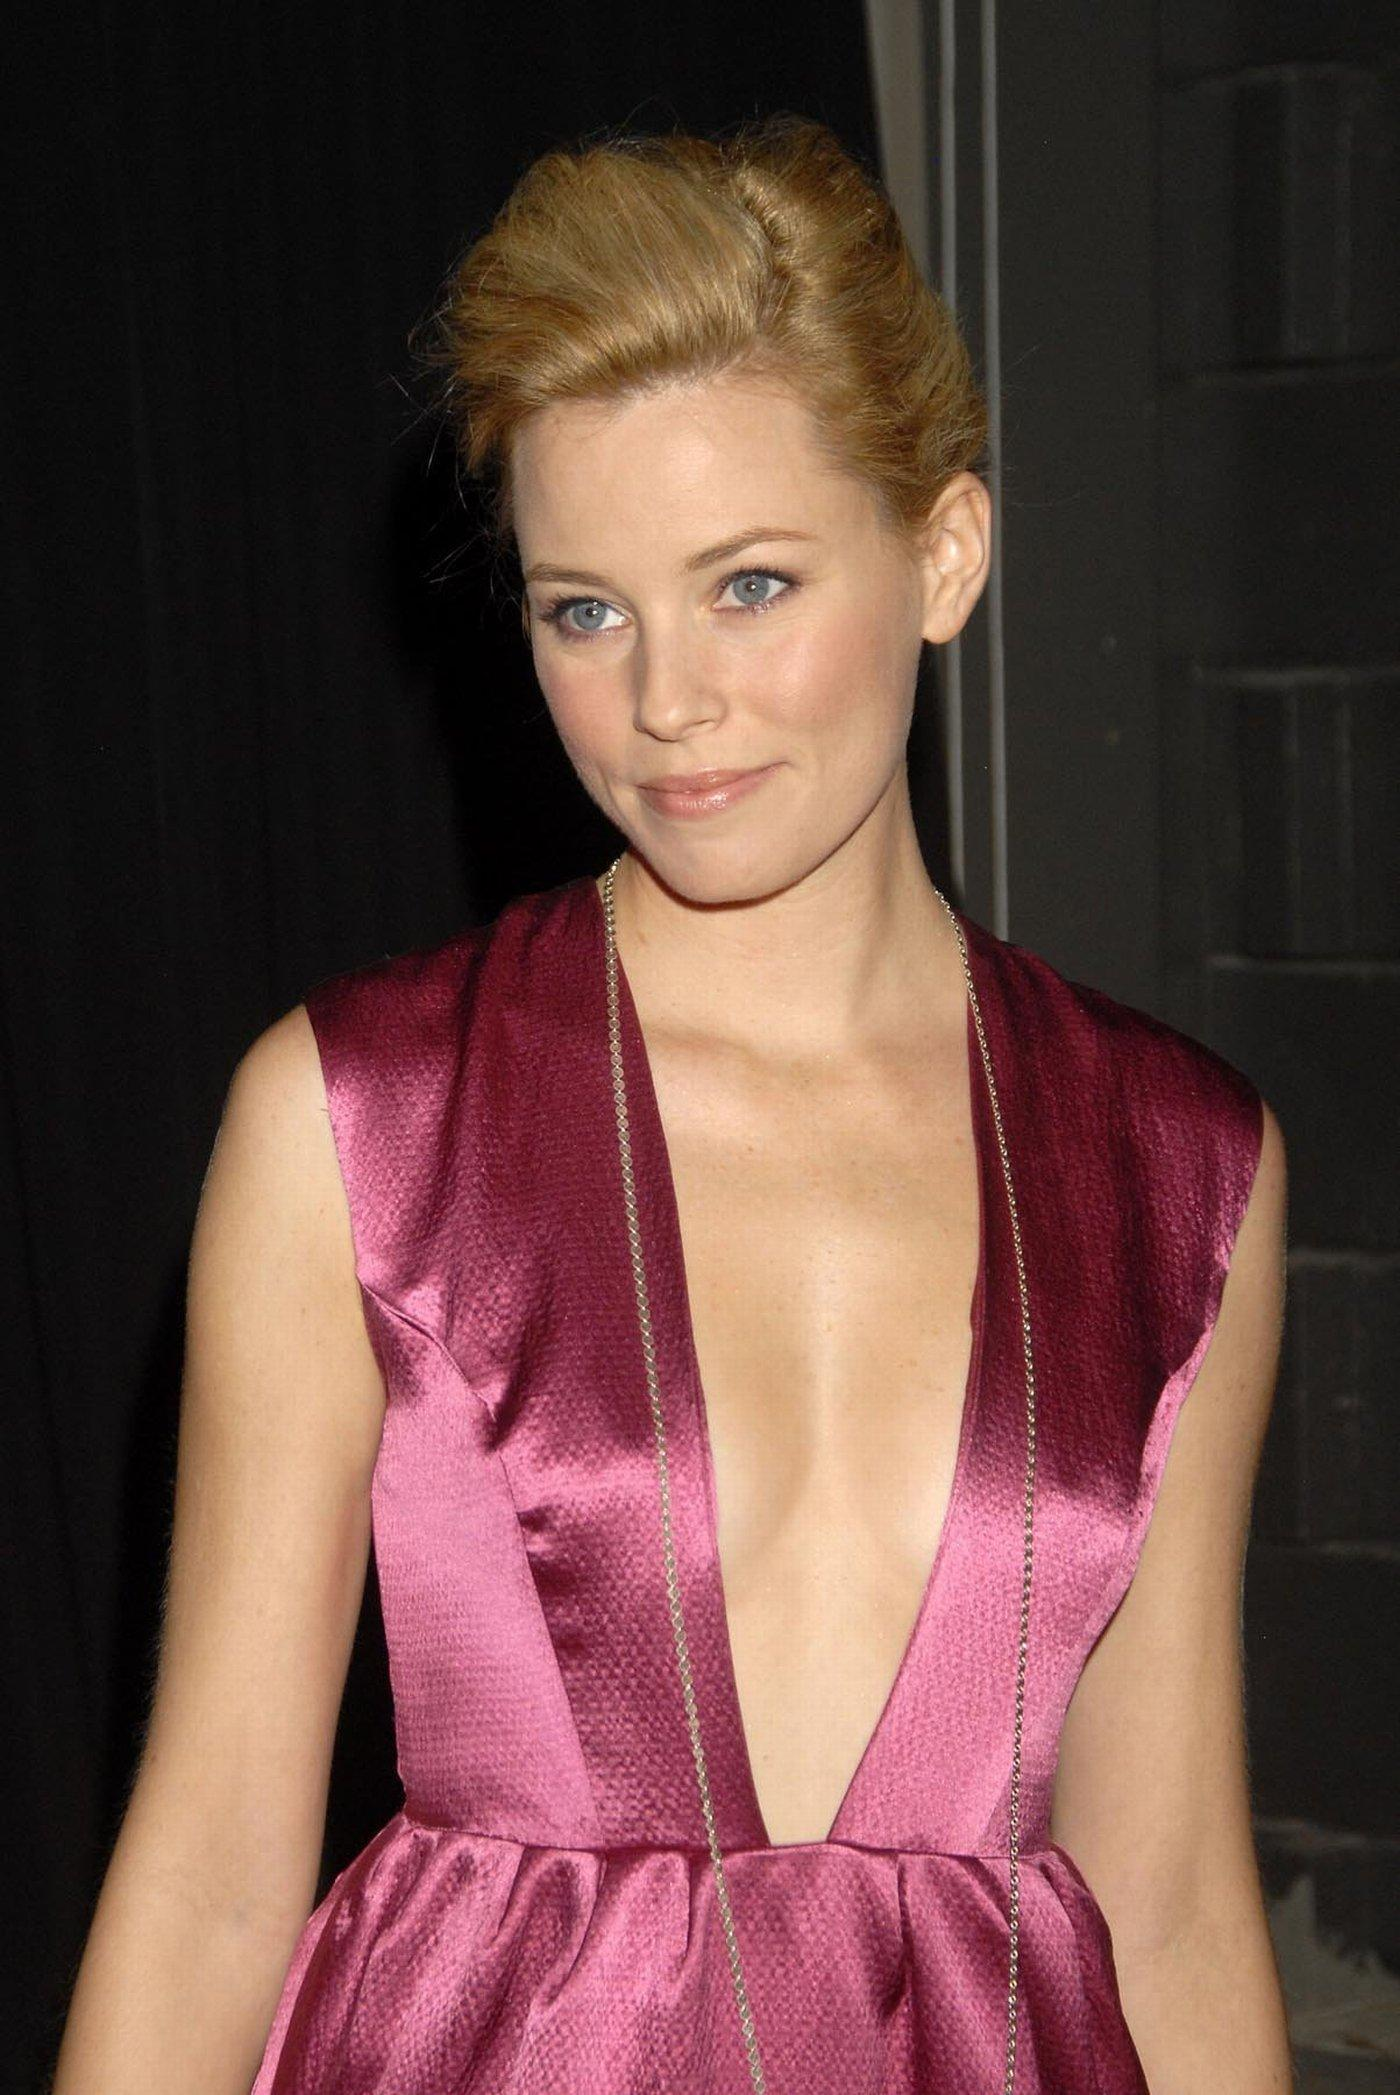 Elizabeth Banks Nude - Side 7 Billeder, Naked, Ups-7839